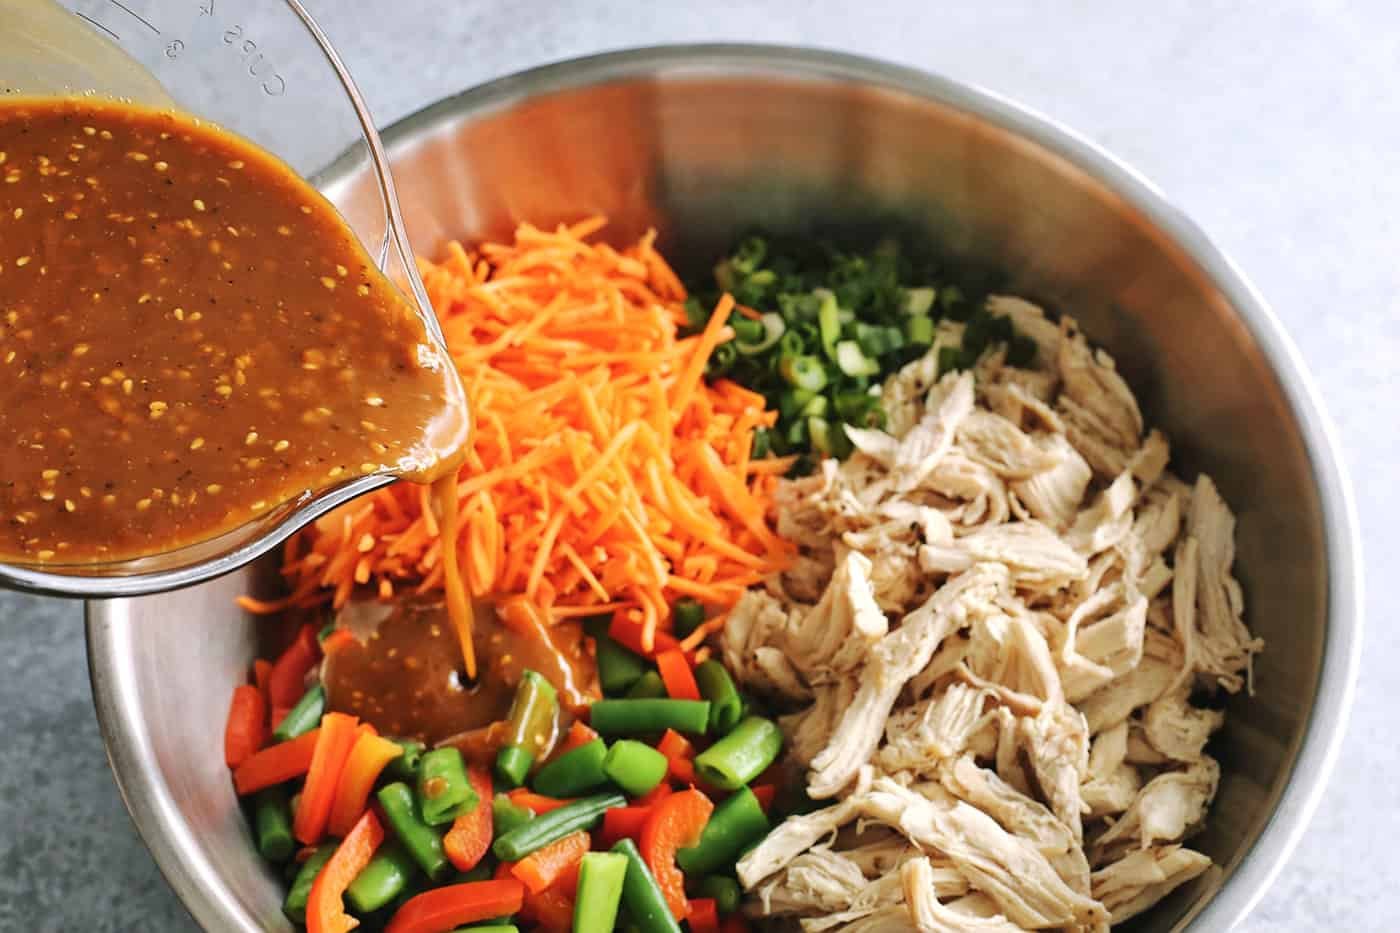 pouring creamy peanut sauce over stainless steel bowl of shredded chicken and chopped vegetables